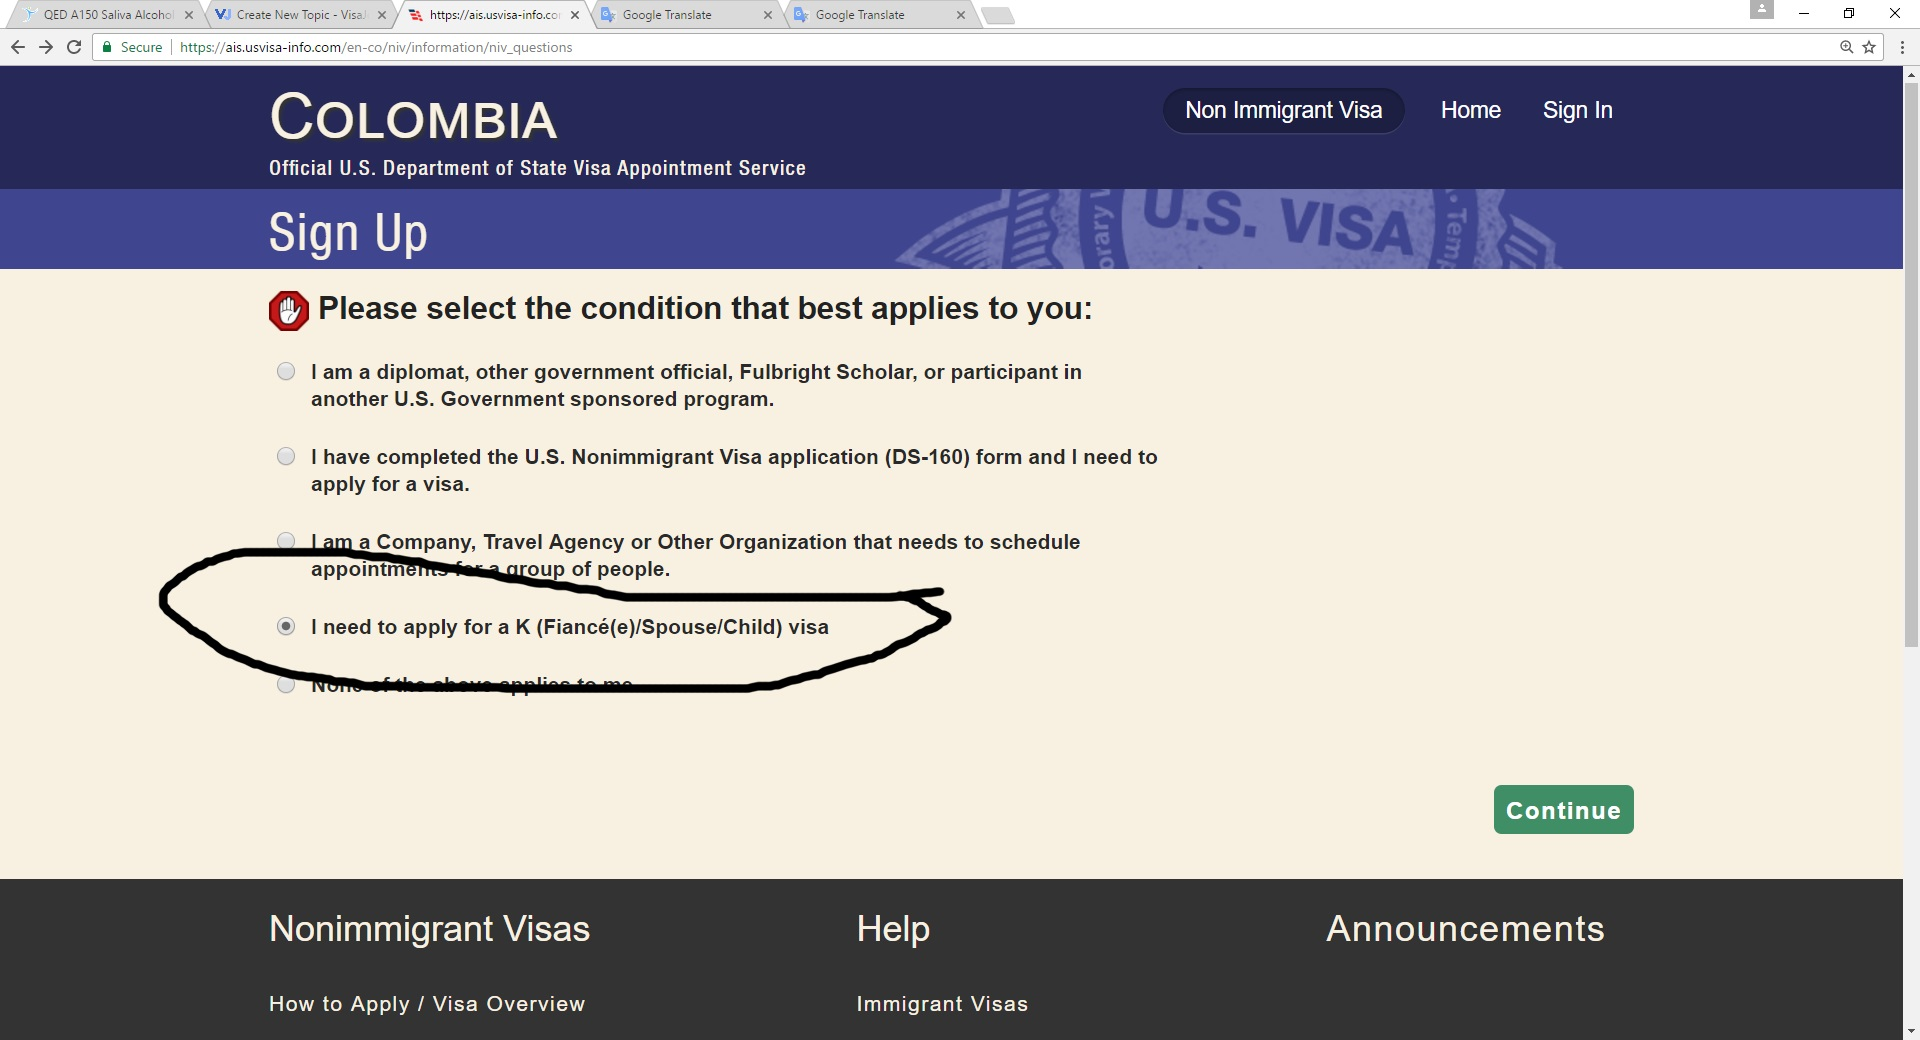 Heads up on Colombia Embassy Website - K-1 Fiance(e) Visa